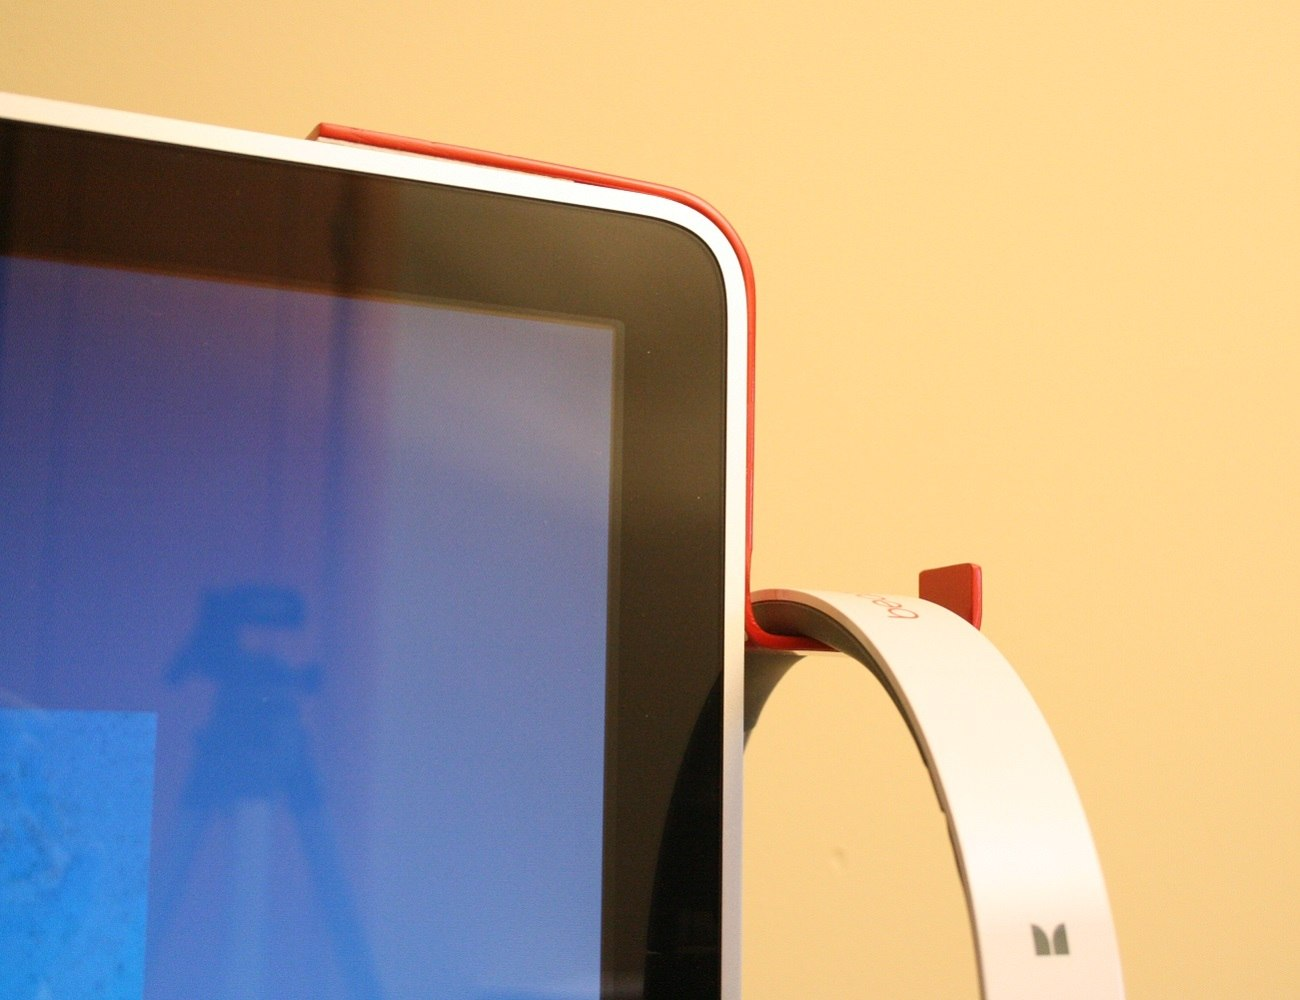 iMac Stand For Headphones By Kancha